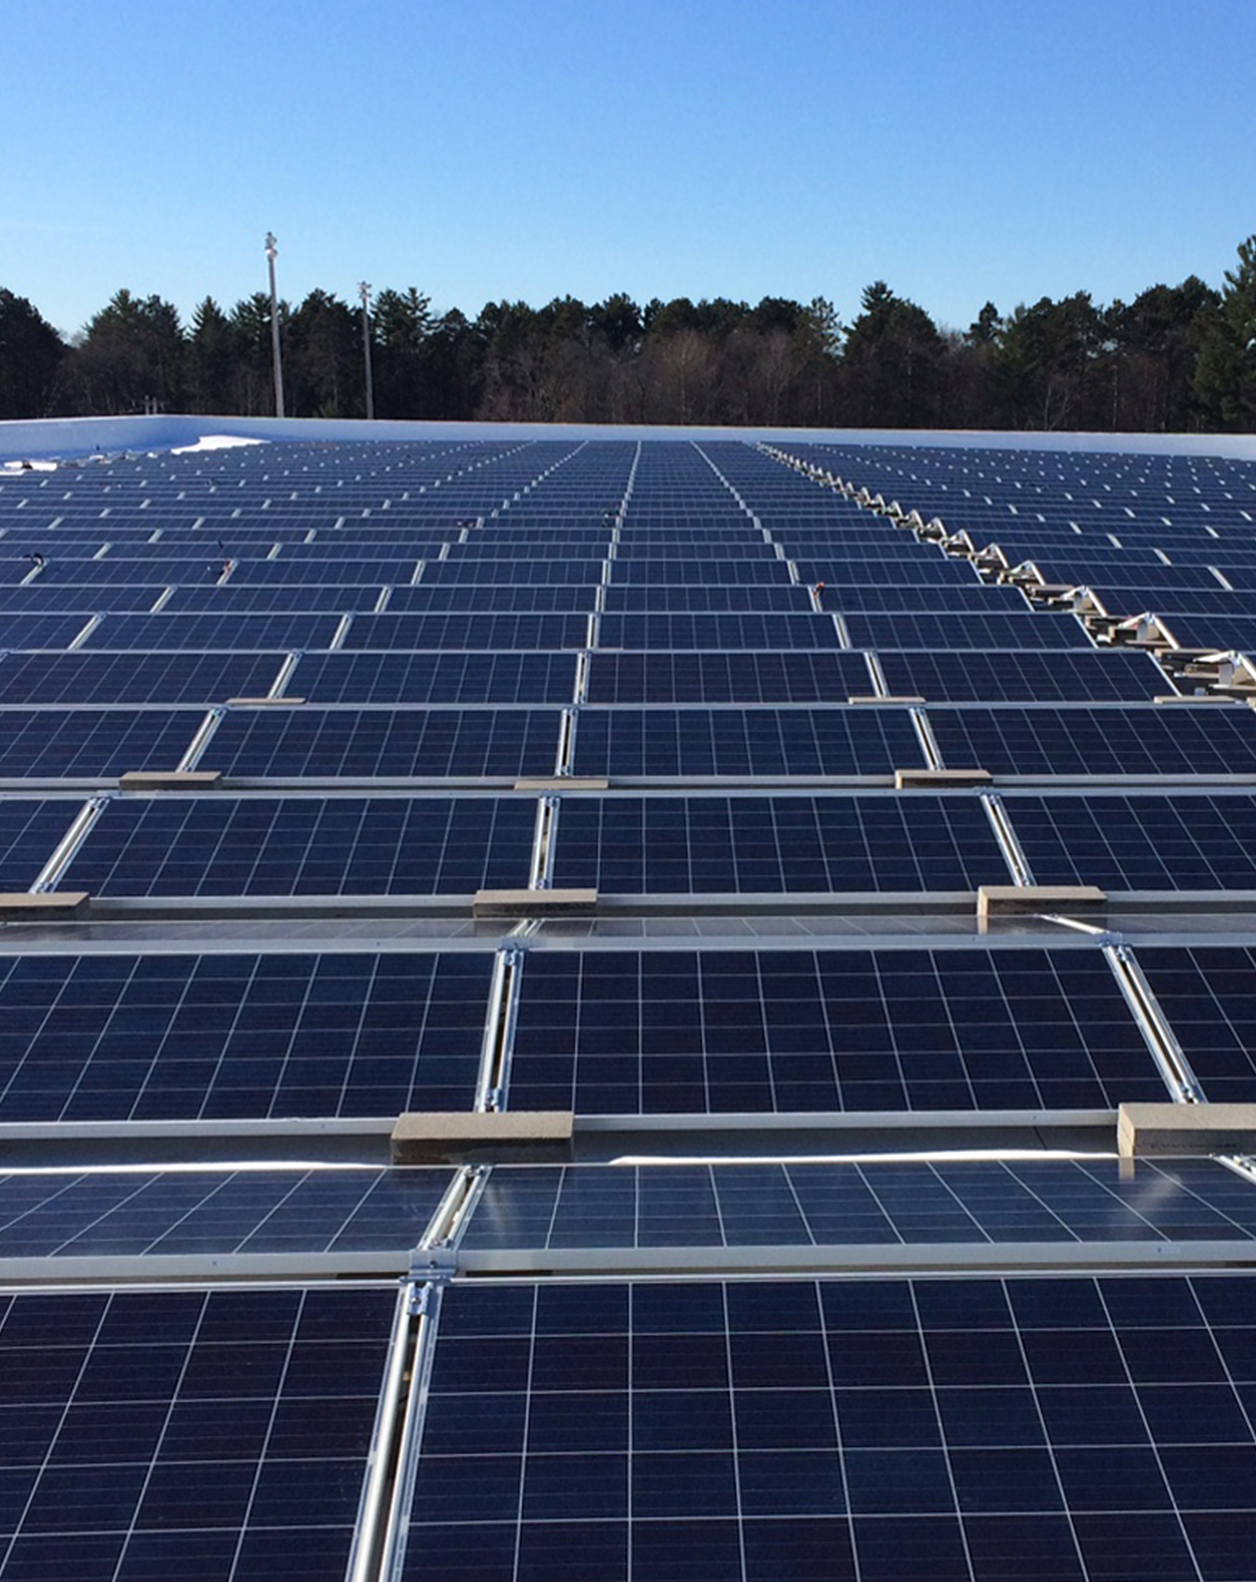 Lakeland Union High School roof-mounted solar PV system